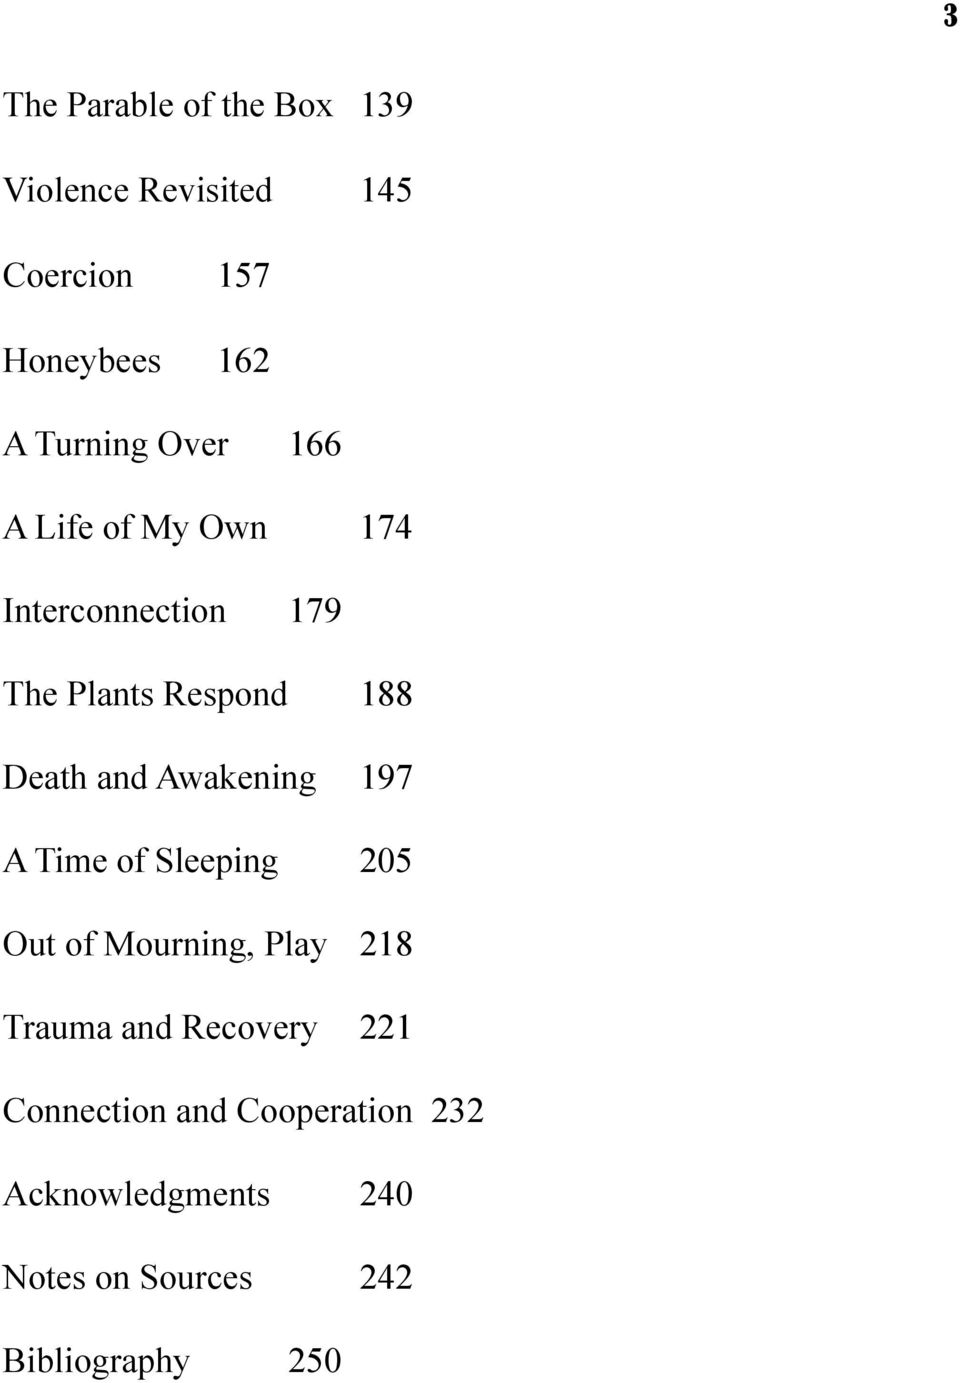 and Awakening 197 A Time of Sleeping 205 Out of Mourning, Play 218 Trauma and Recovery